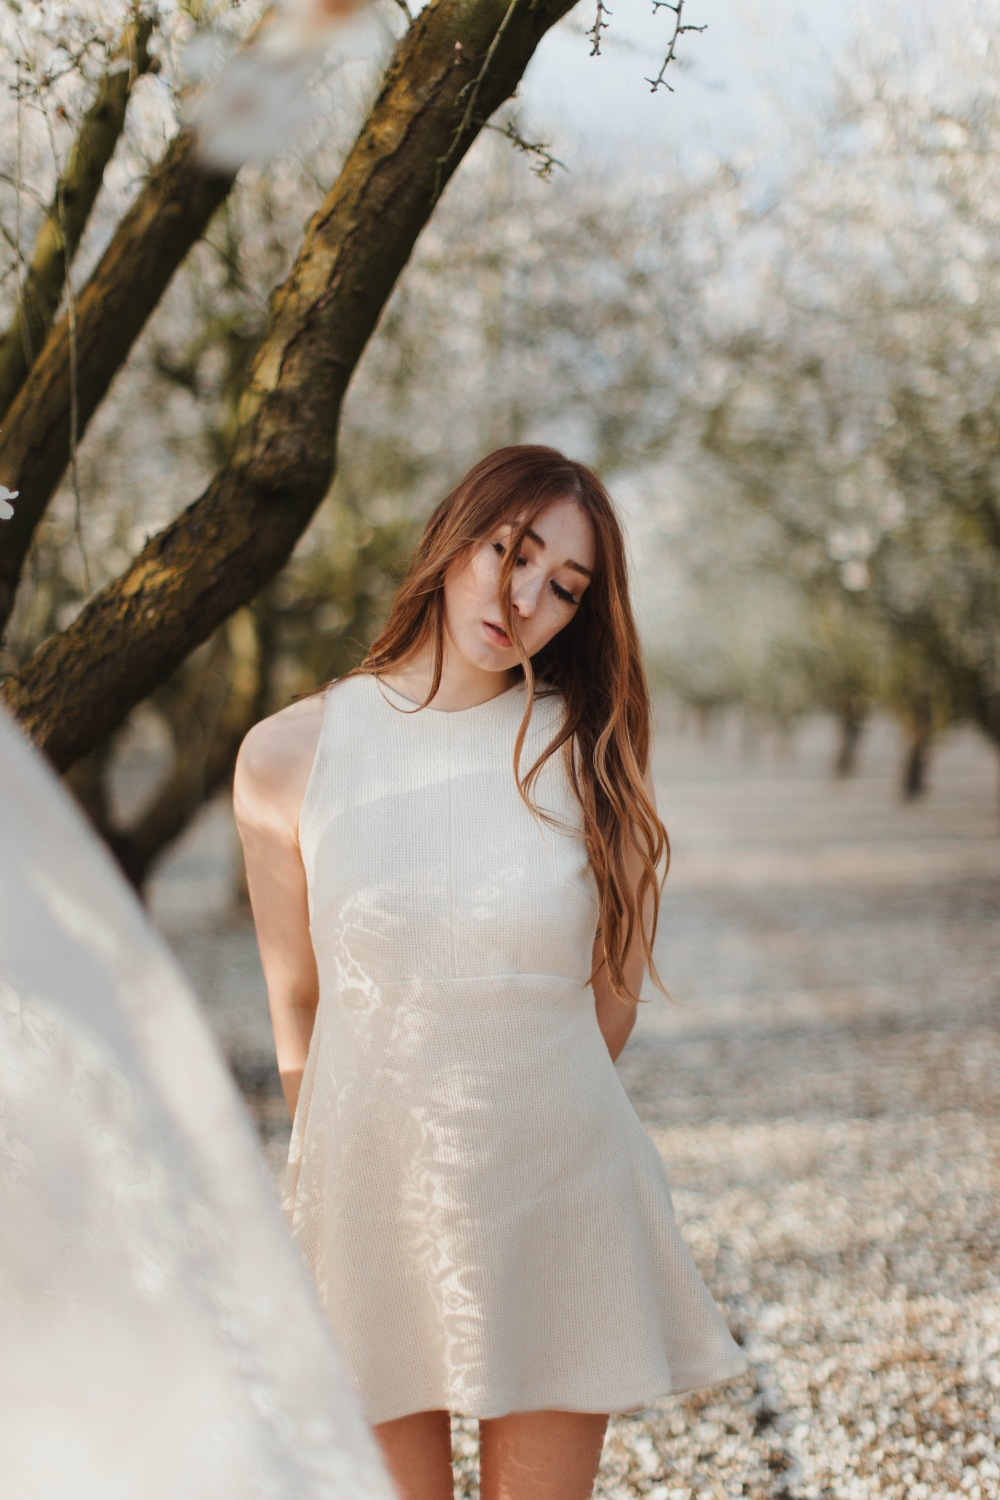 Alyssa-Nicole-Kayliegh-Dress-Beyond-The-Blossoms-9